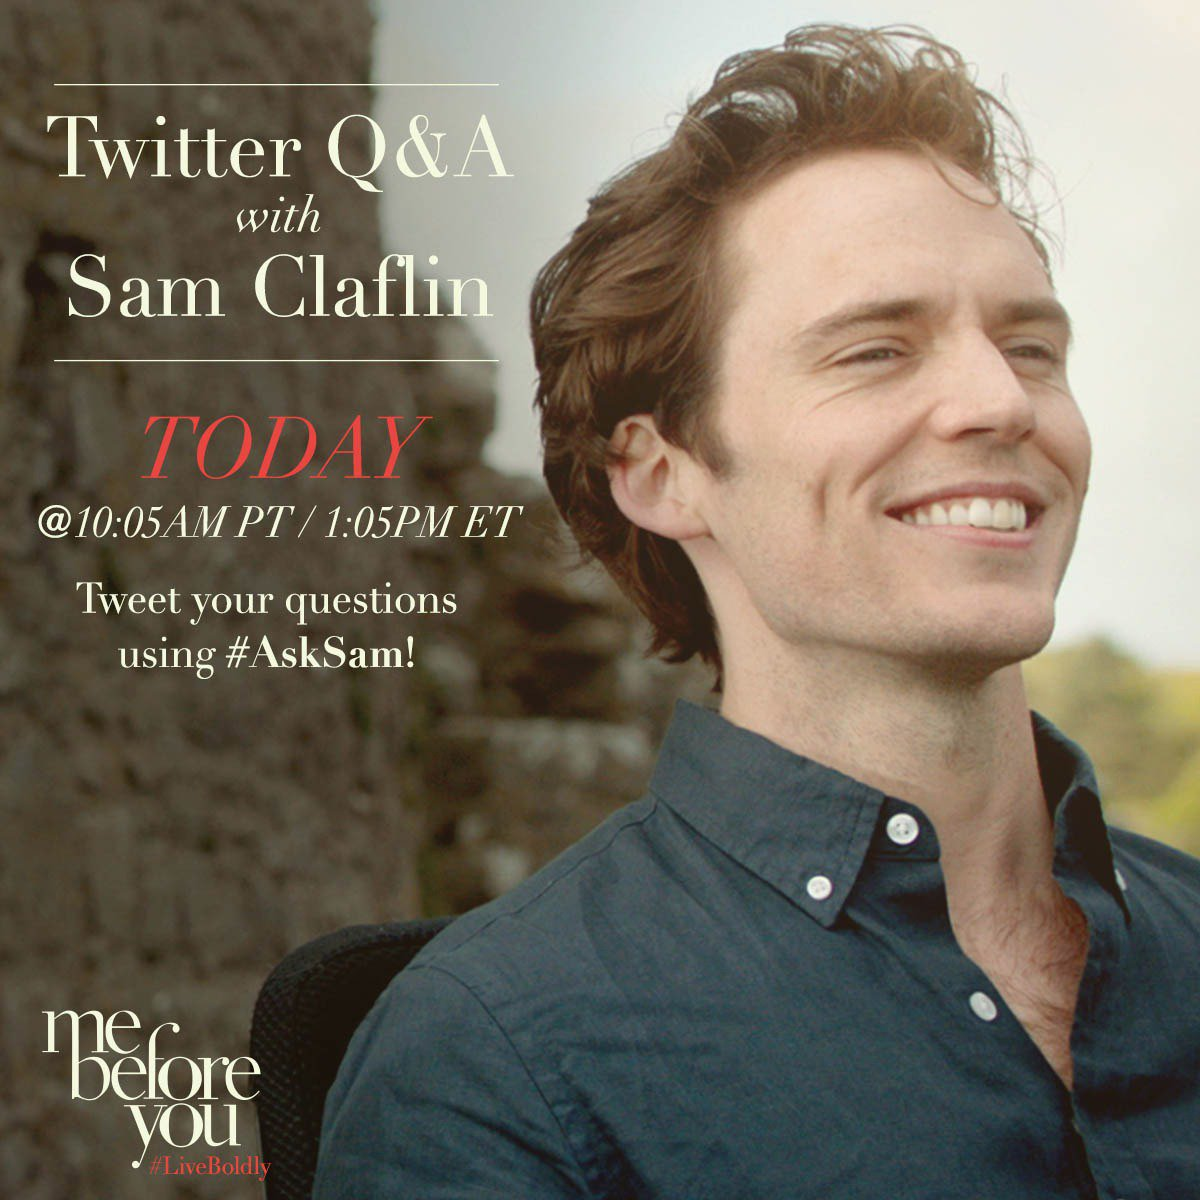 Don't miss your chance to chat with @samclaflin today on Twitter. Tweet your questions using #AskSam. #LiveBoldly https://t.co/o8sPDam4kt